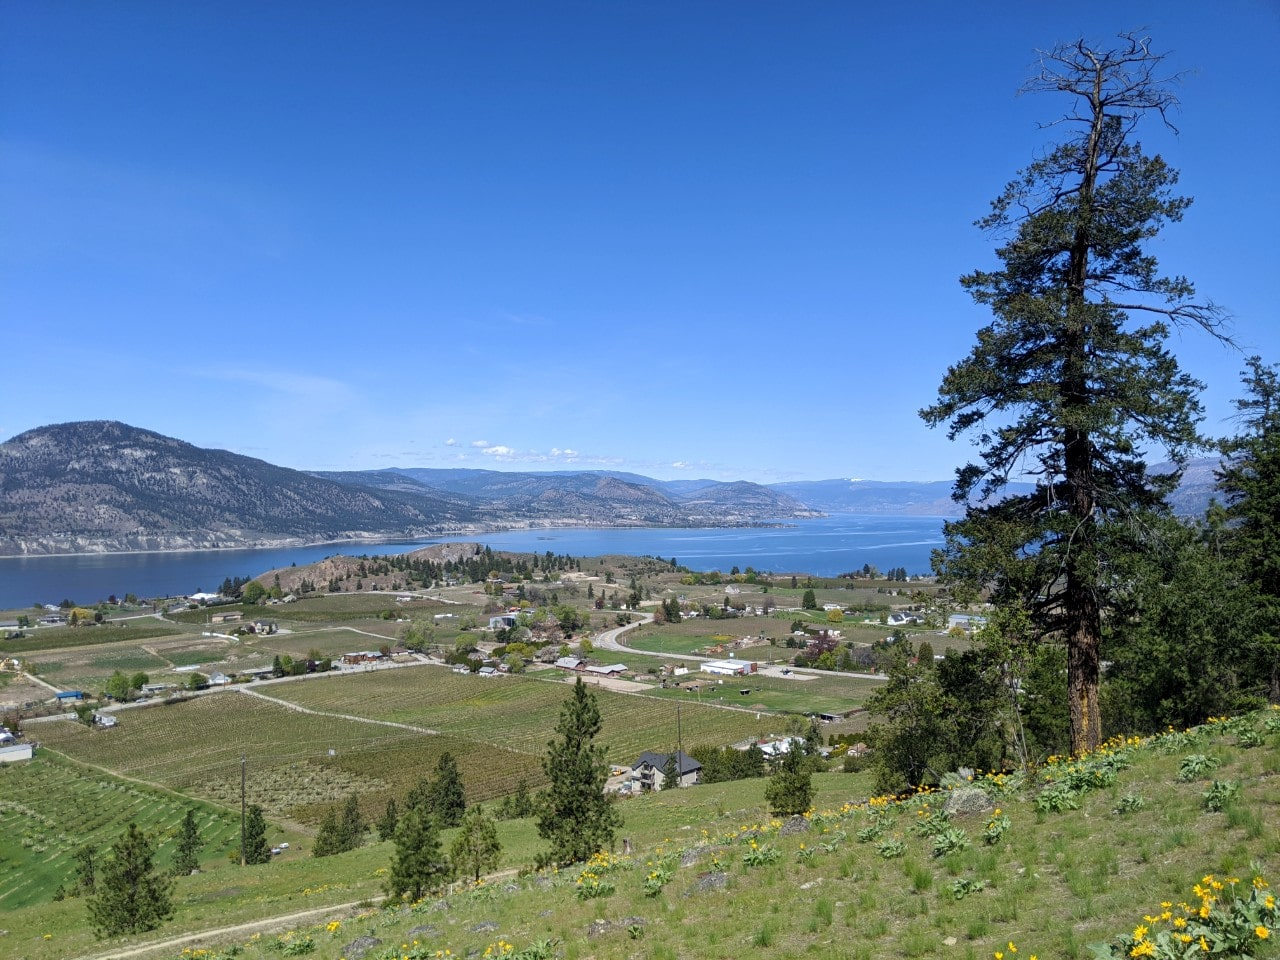 Elevated view from hiking trail looking down on Penticton's Upper Bench and deep blue Okanagan Lake